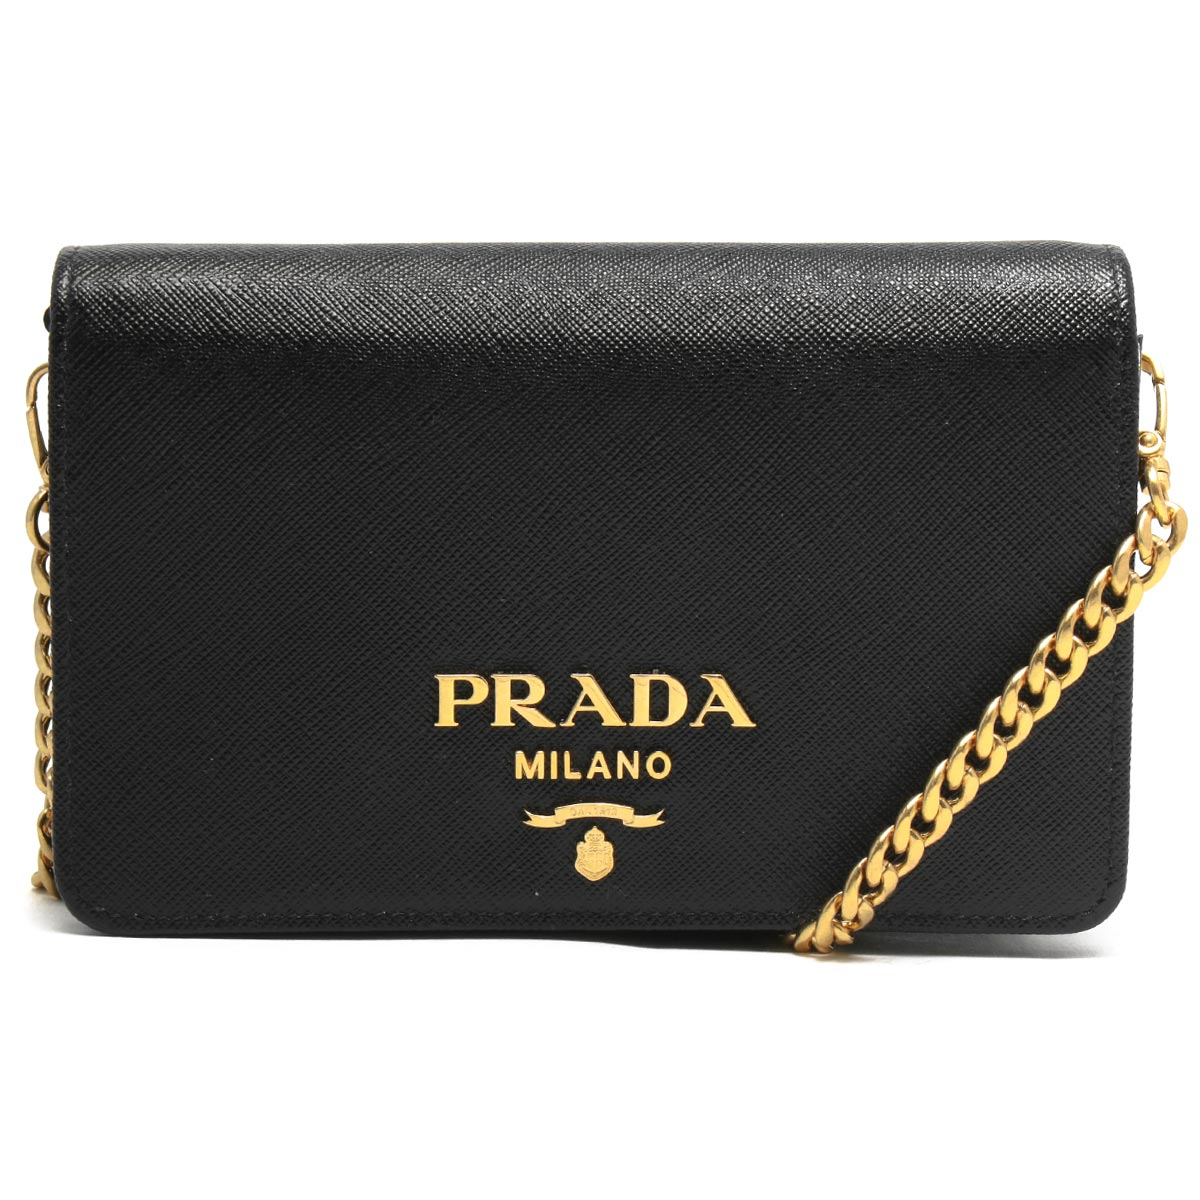 Prada Chain Wallet/Shoulder Bag/Long Wallet Bag Ladies Saffiano Lux Black 1BP006 NZV F0002 VCOW Spring/Summer 2020 New PRADA